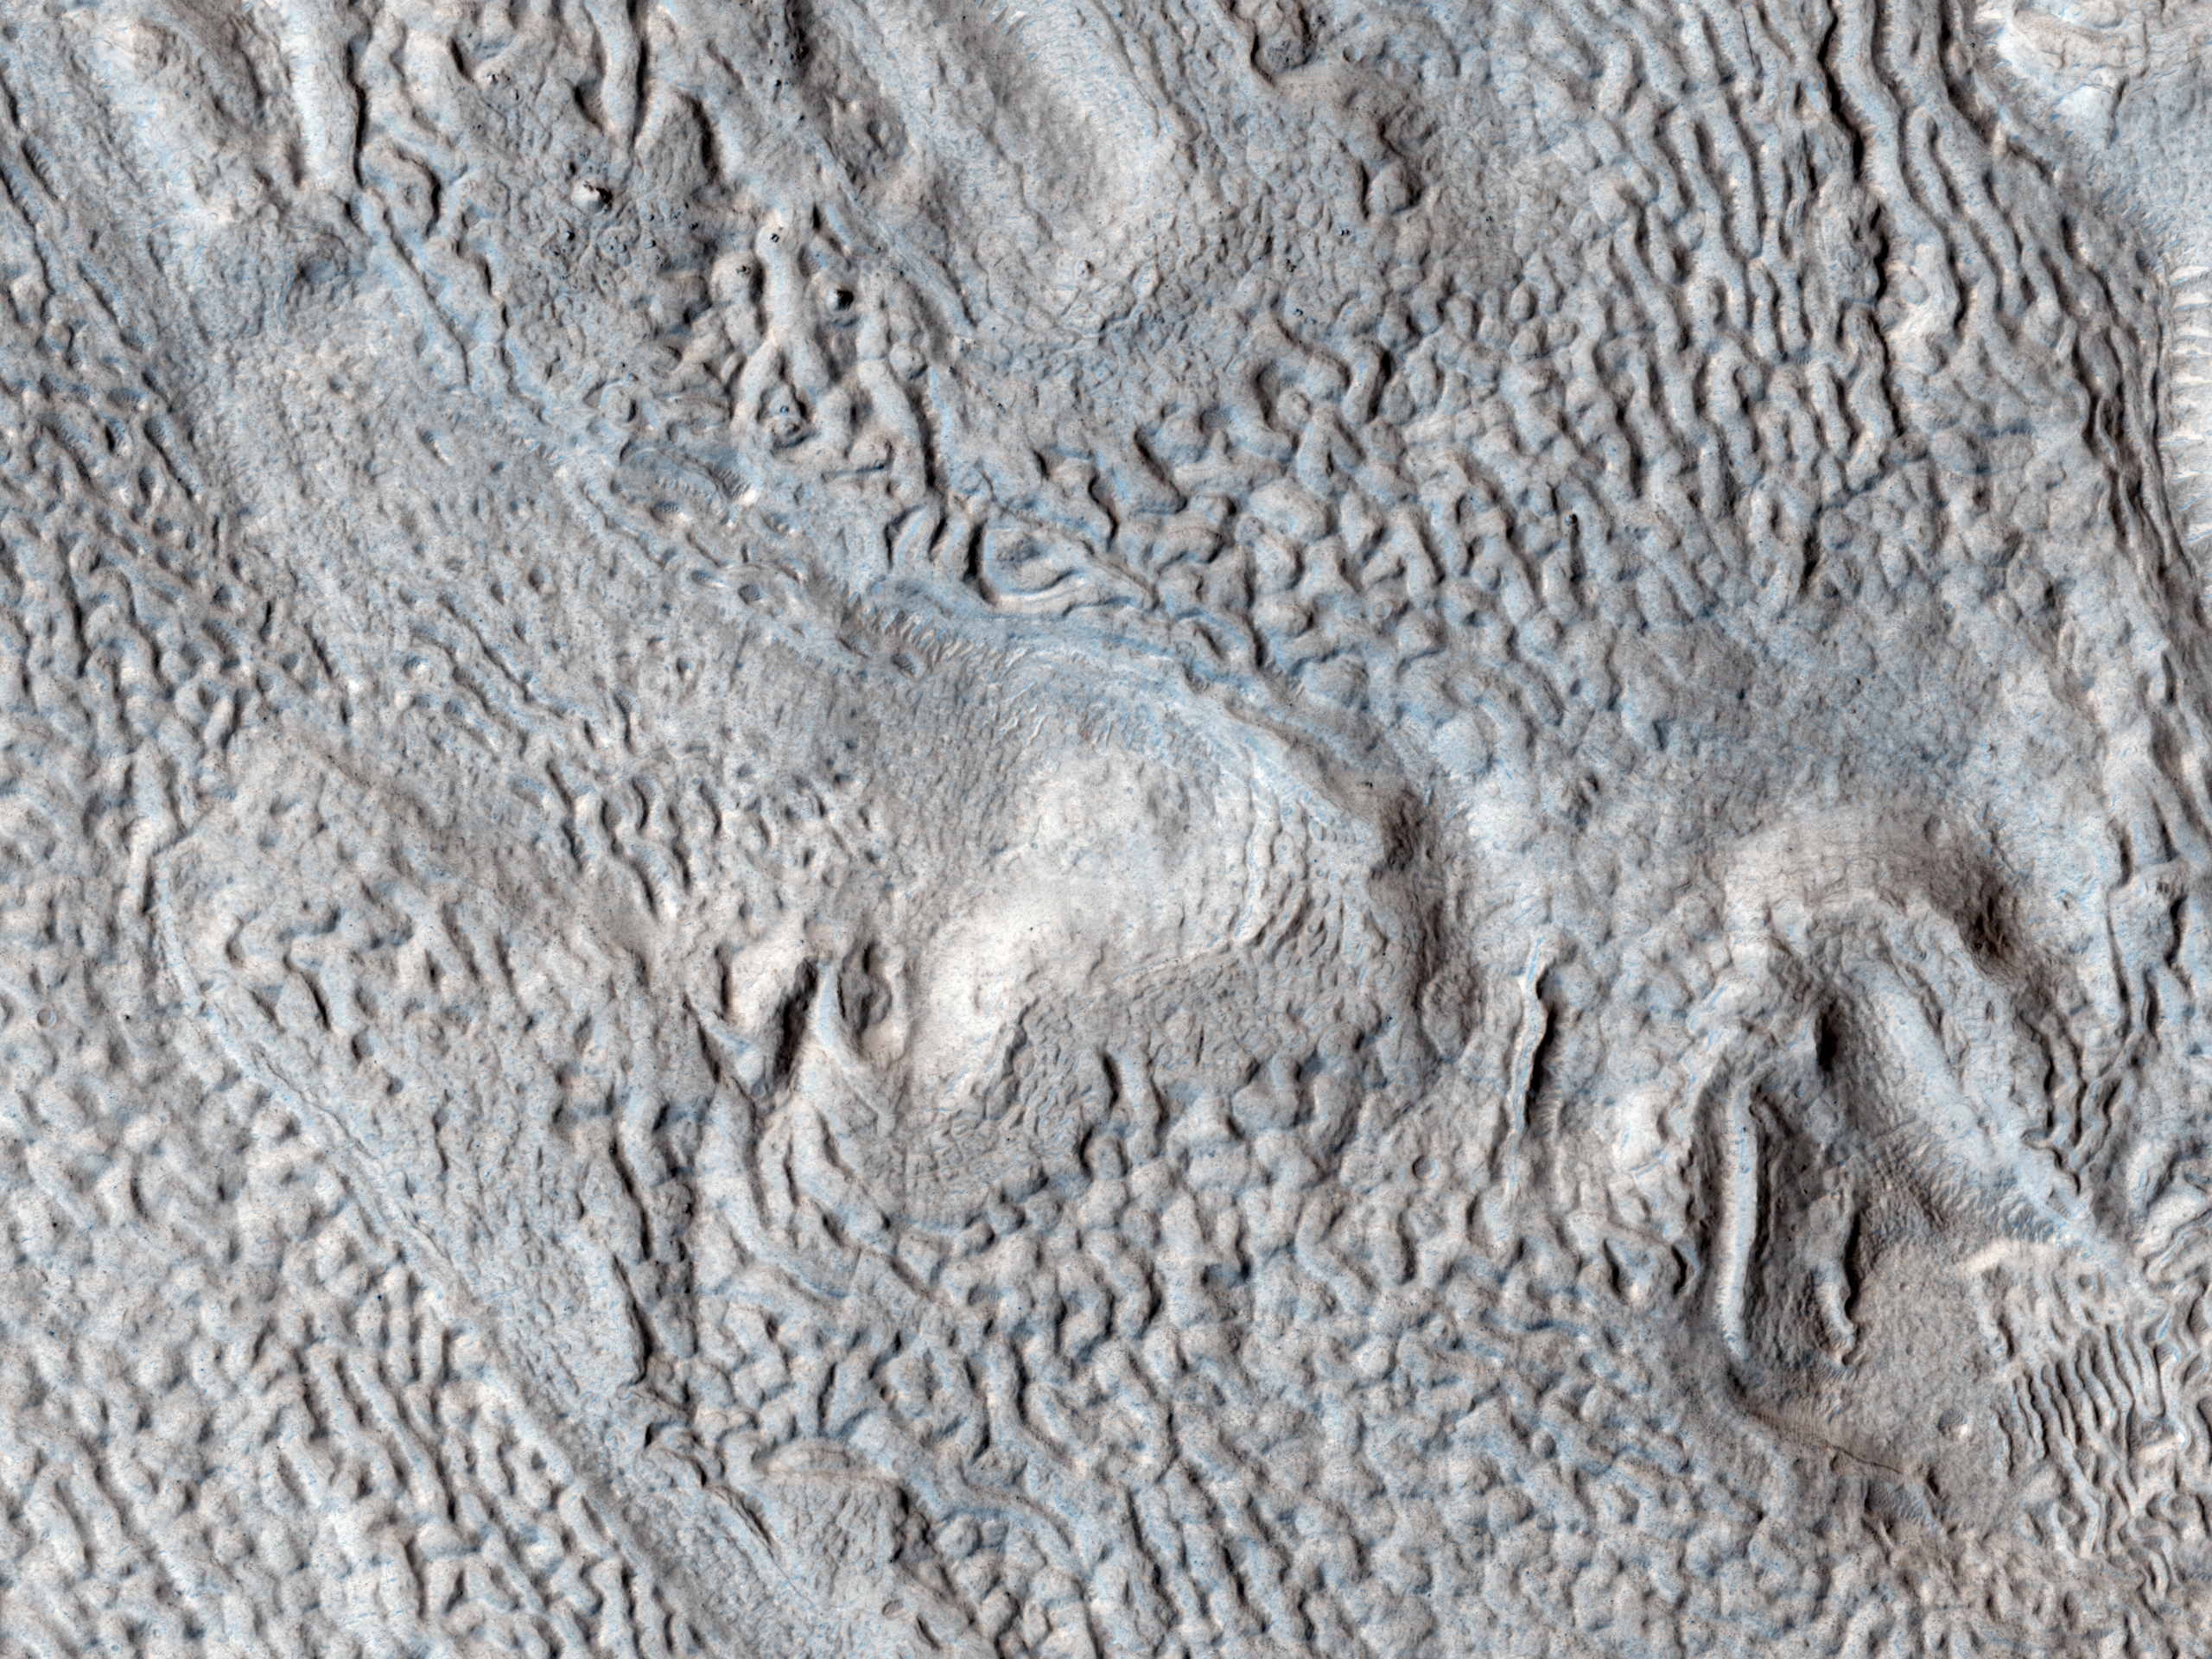 Ridges and Grooves